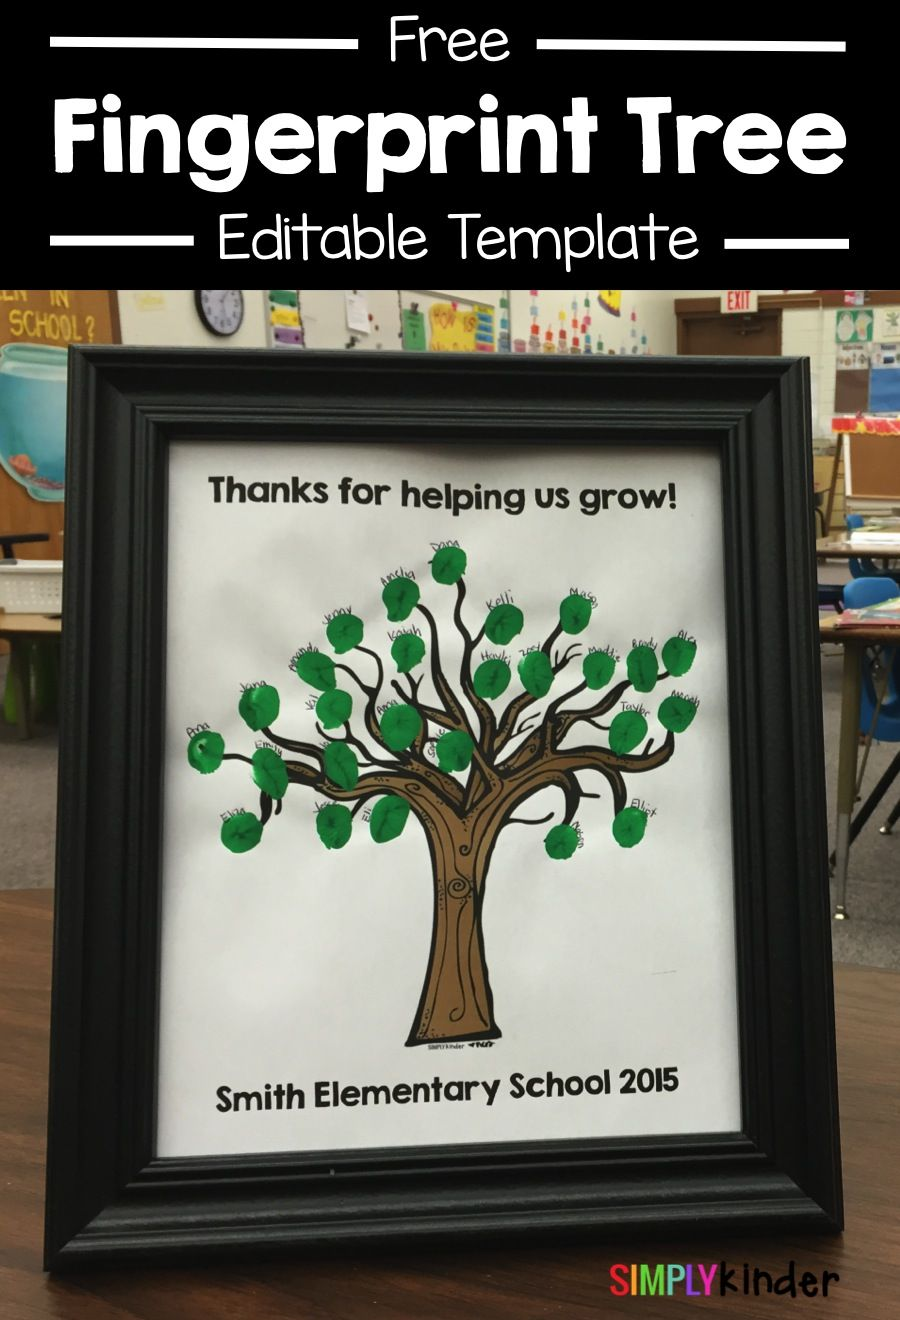 Thank You Gifts From Your Class | Pinterest | Fingerprint tree ...